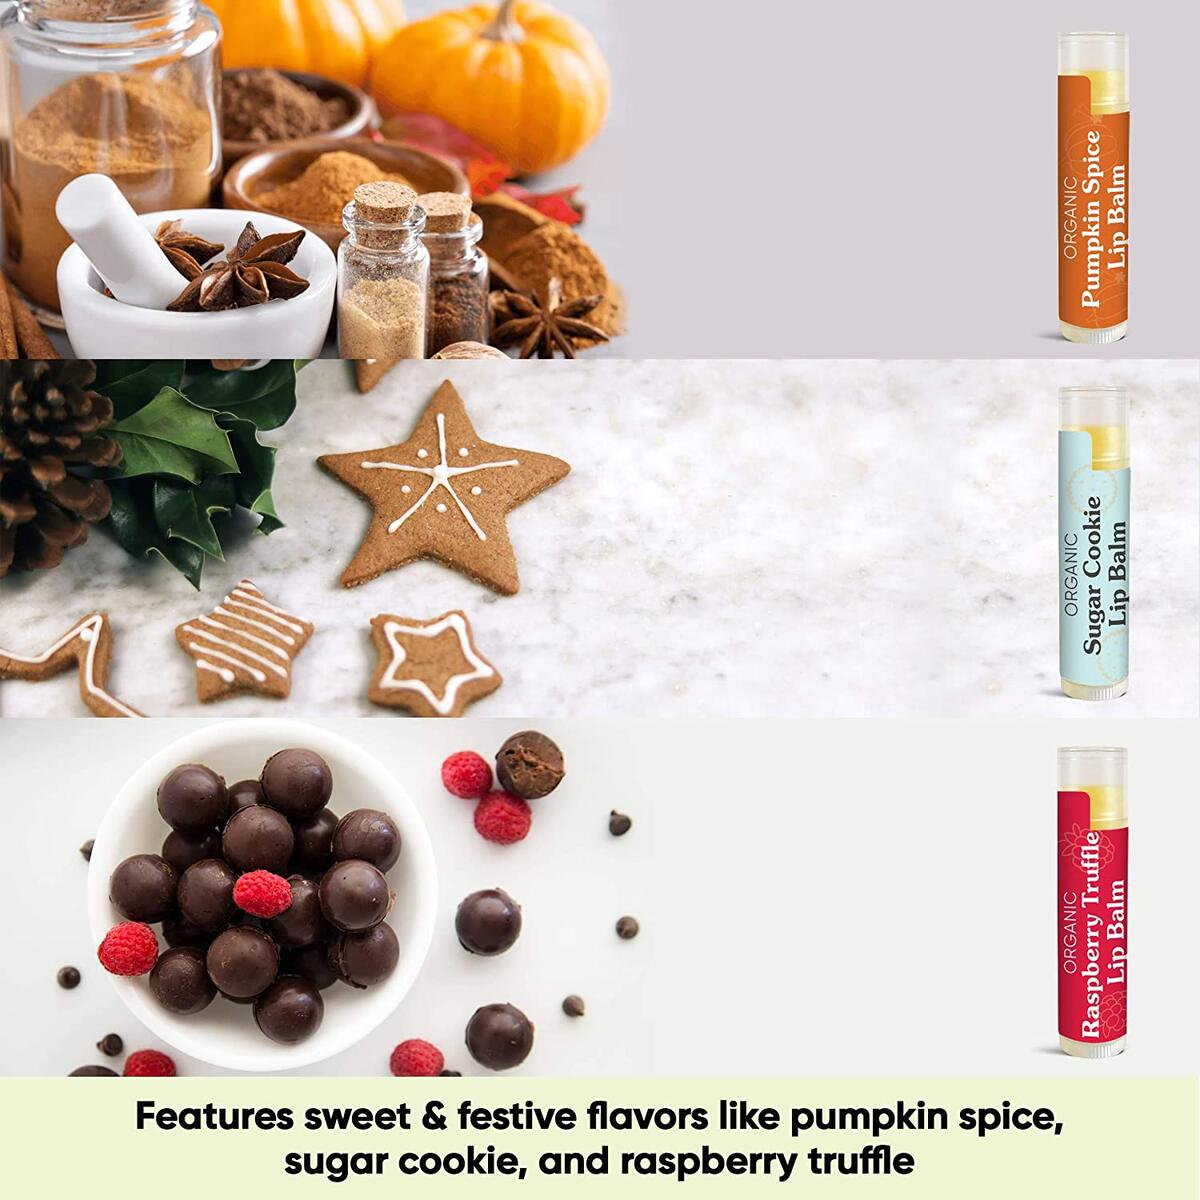 Organic Holiday Lip Balm Trio by Sky Organics (3 Sticks) Holiday Fall Flavors Moisturizing Lip Balm Gift Set Pumpkin Spice, Sugar Cookie, Raspberry Truffle Limited Edition Stocking Stuffer Made In USA